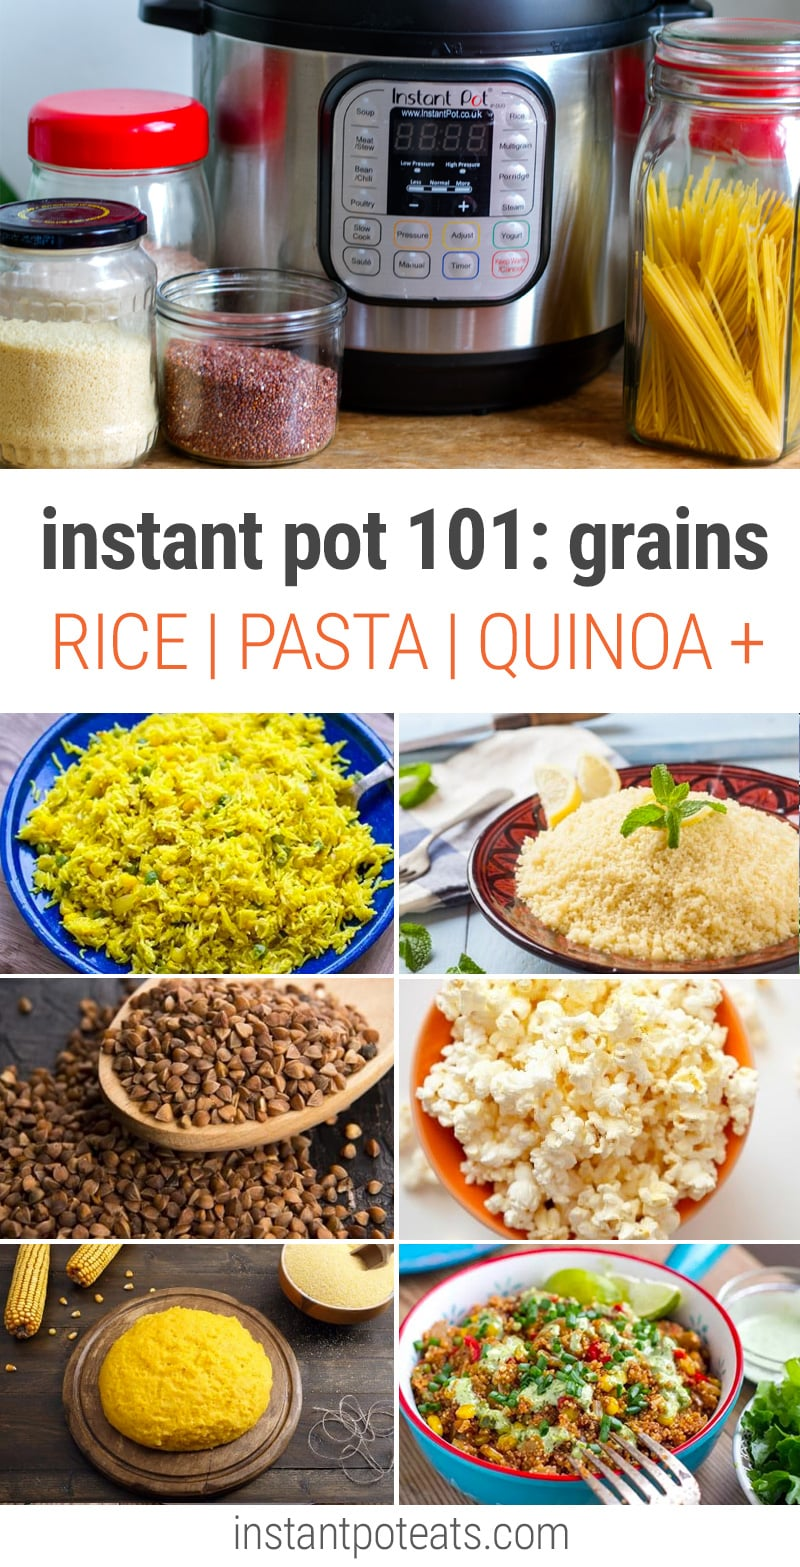 Instant Pot 101: How To Cook Grains (Quinoa, Rice, Pasta and more)